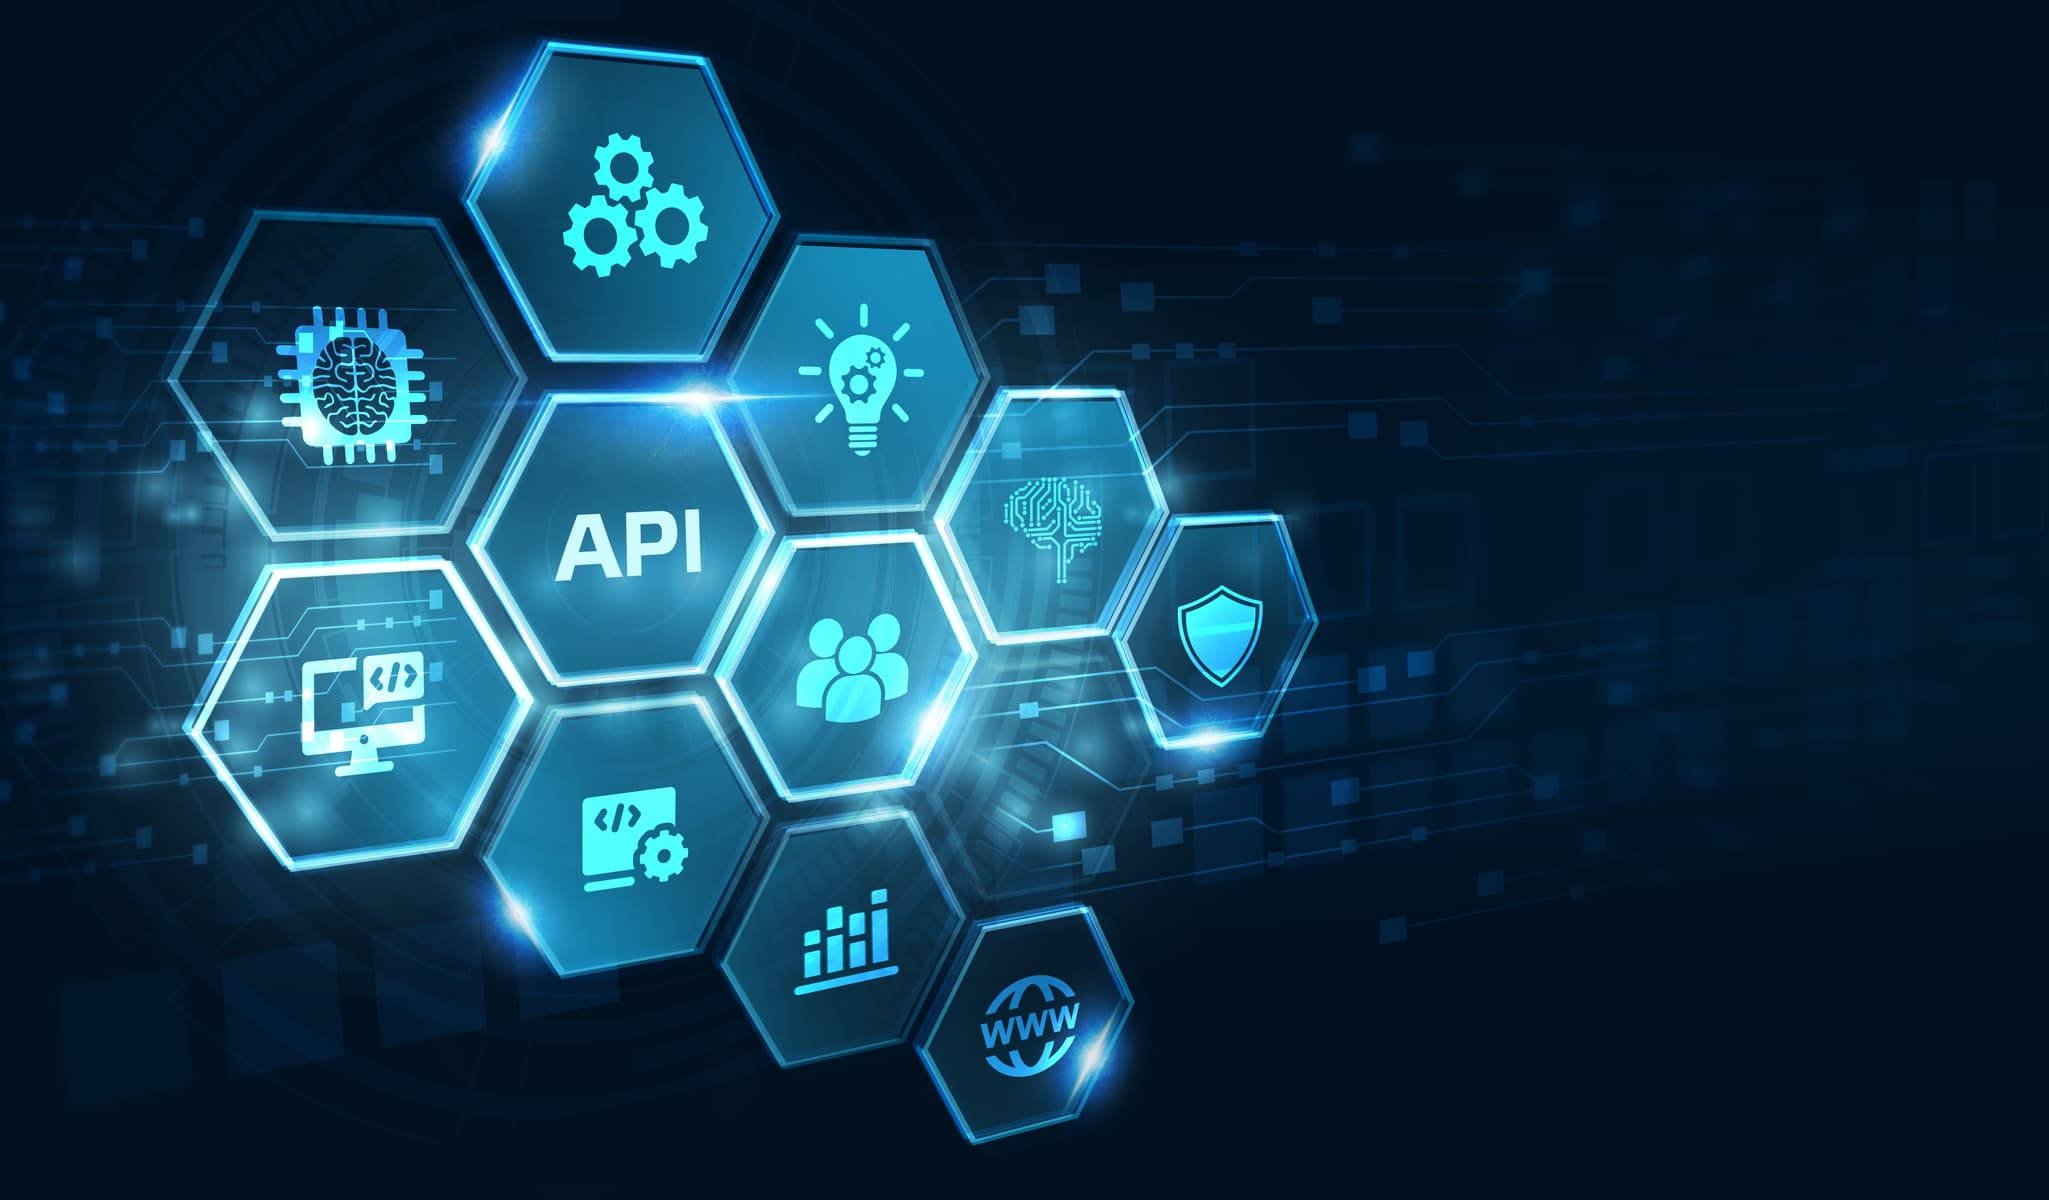 Api Application Programming Interface. Software Development Tool. Business, Modern Technology, Internet And Networking Concept.